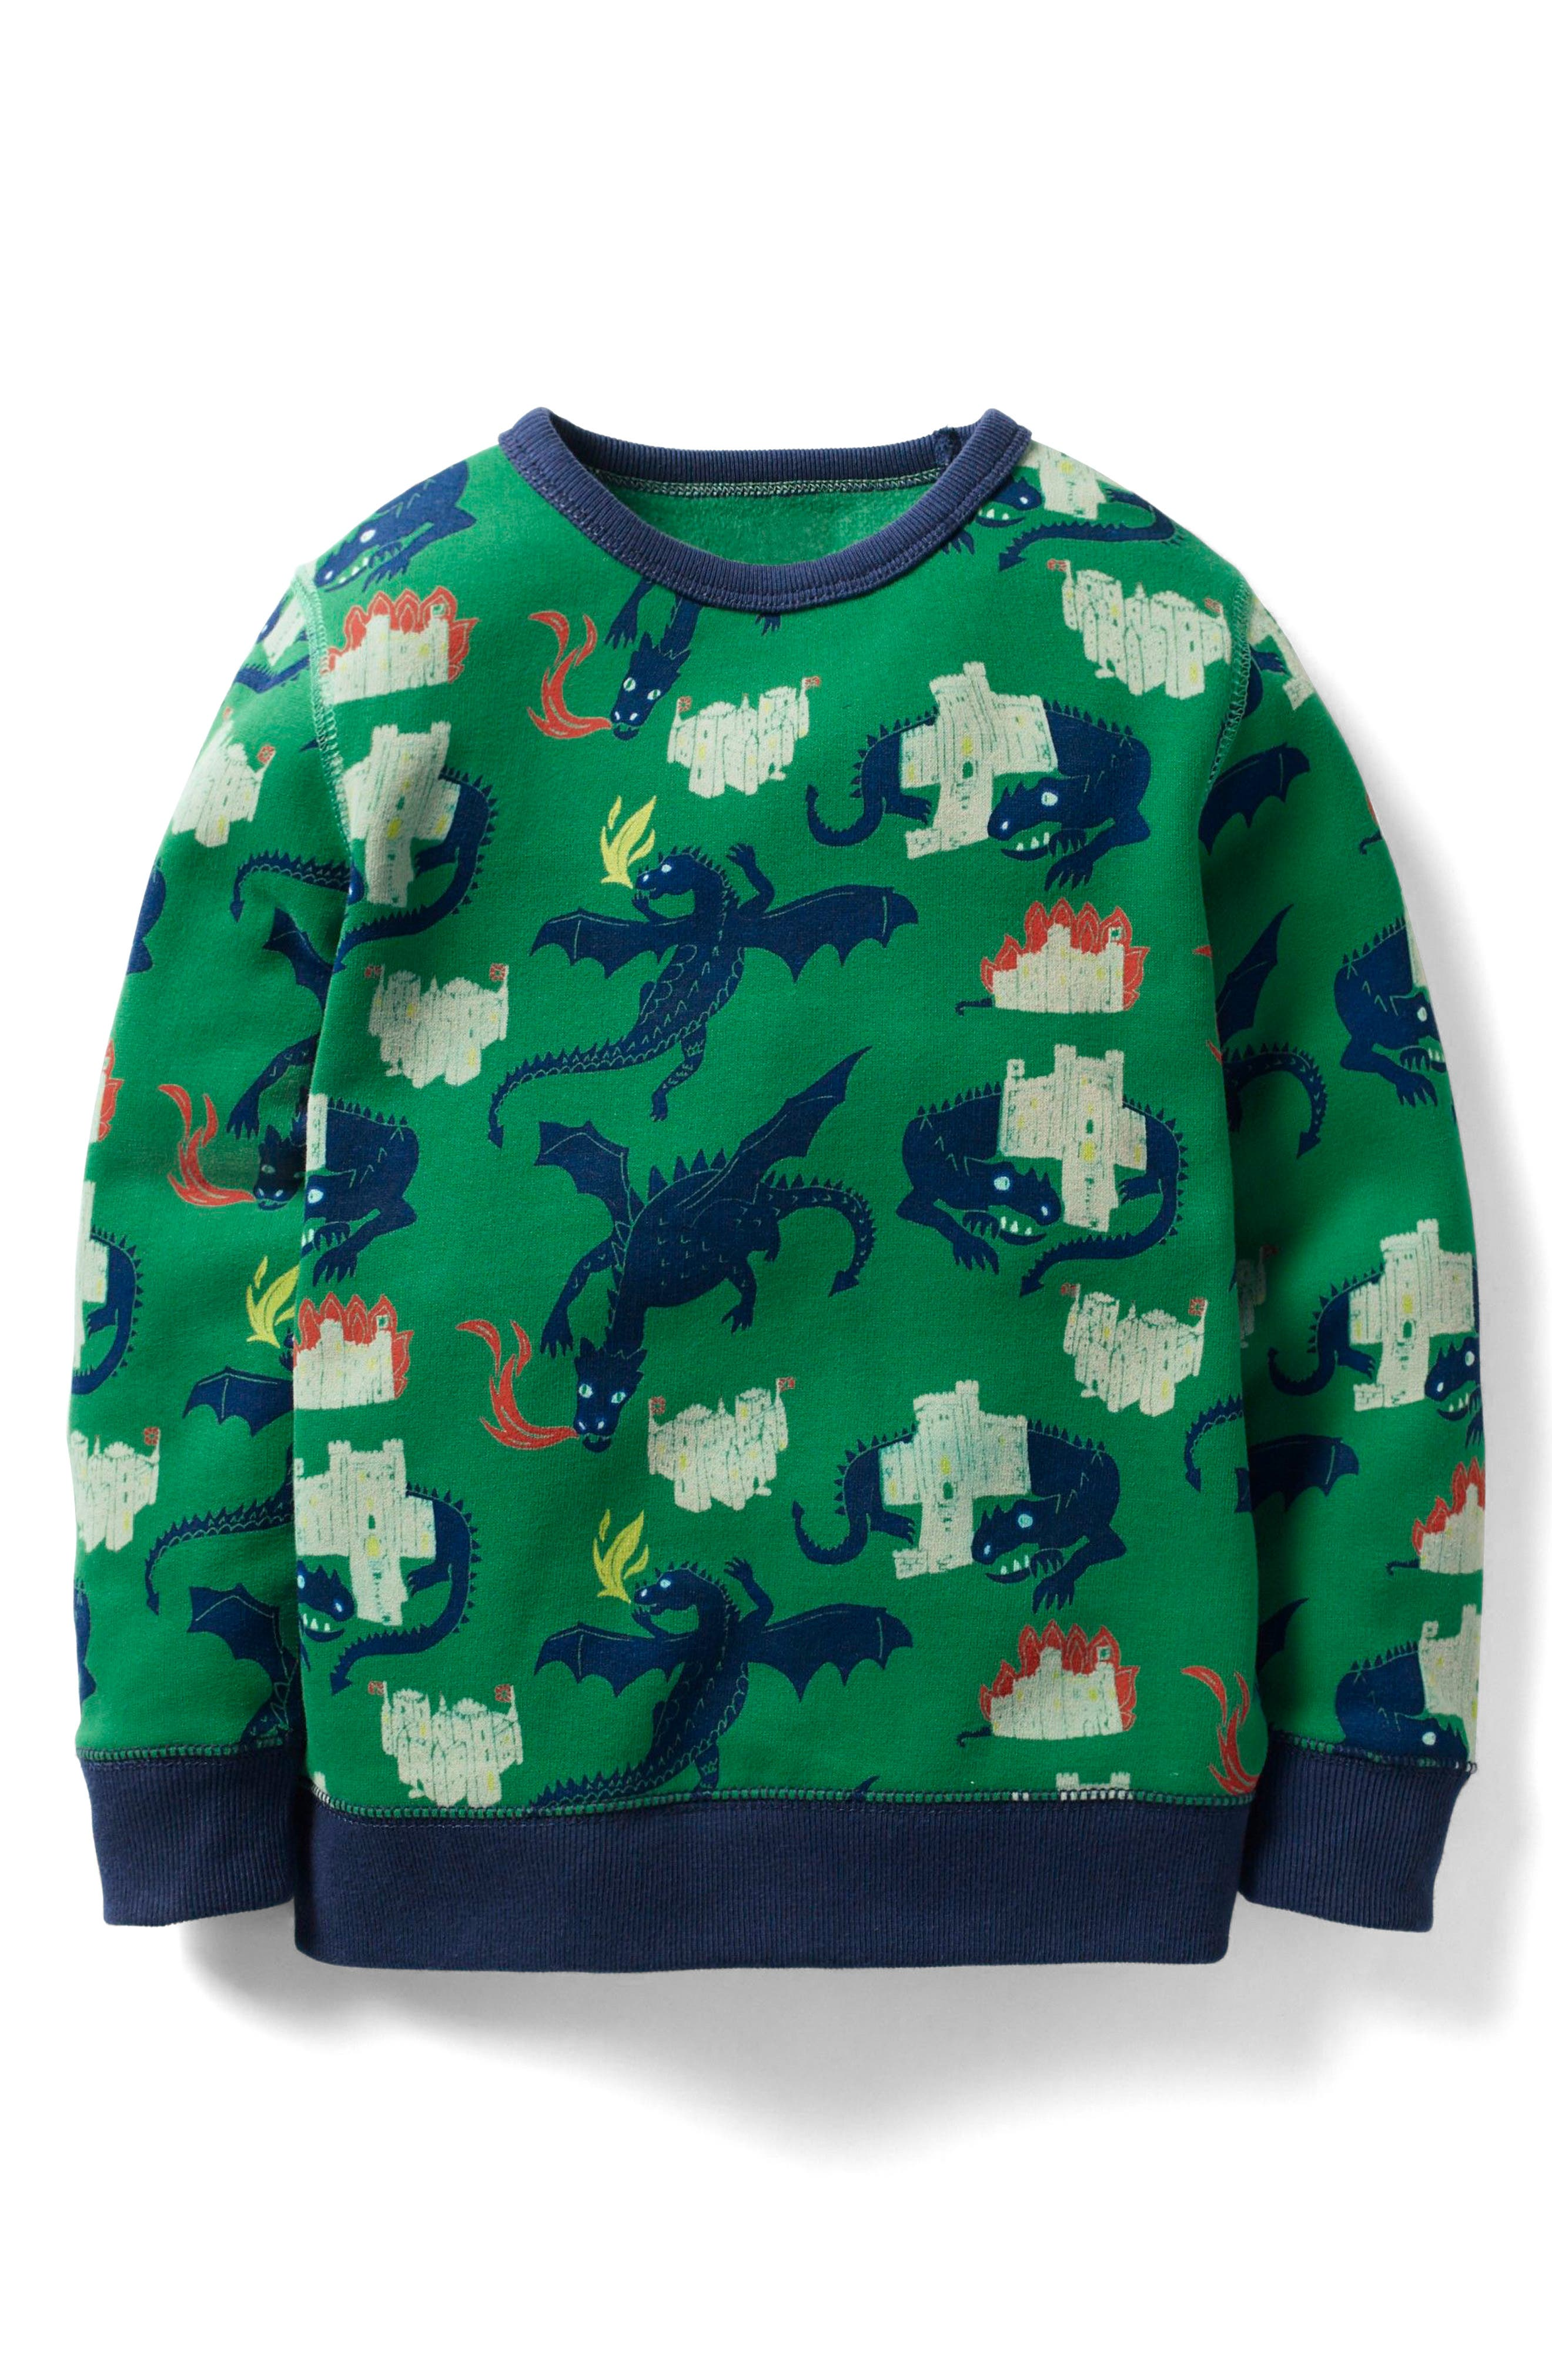 Hero's Tale Sweatshirt,                             Main thumbnail 1, color,                             Crocodile Green Dragons